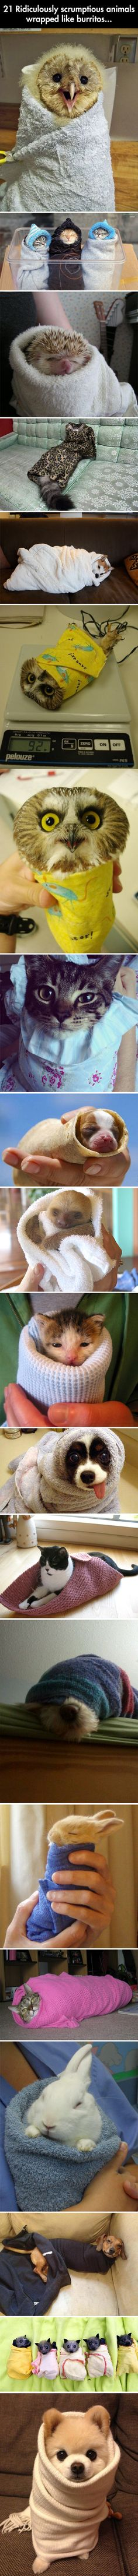 The cutest burritos ever…